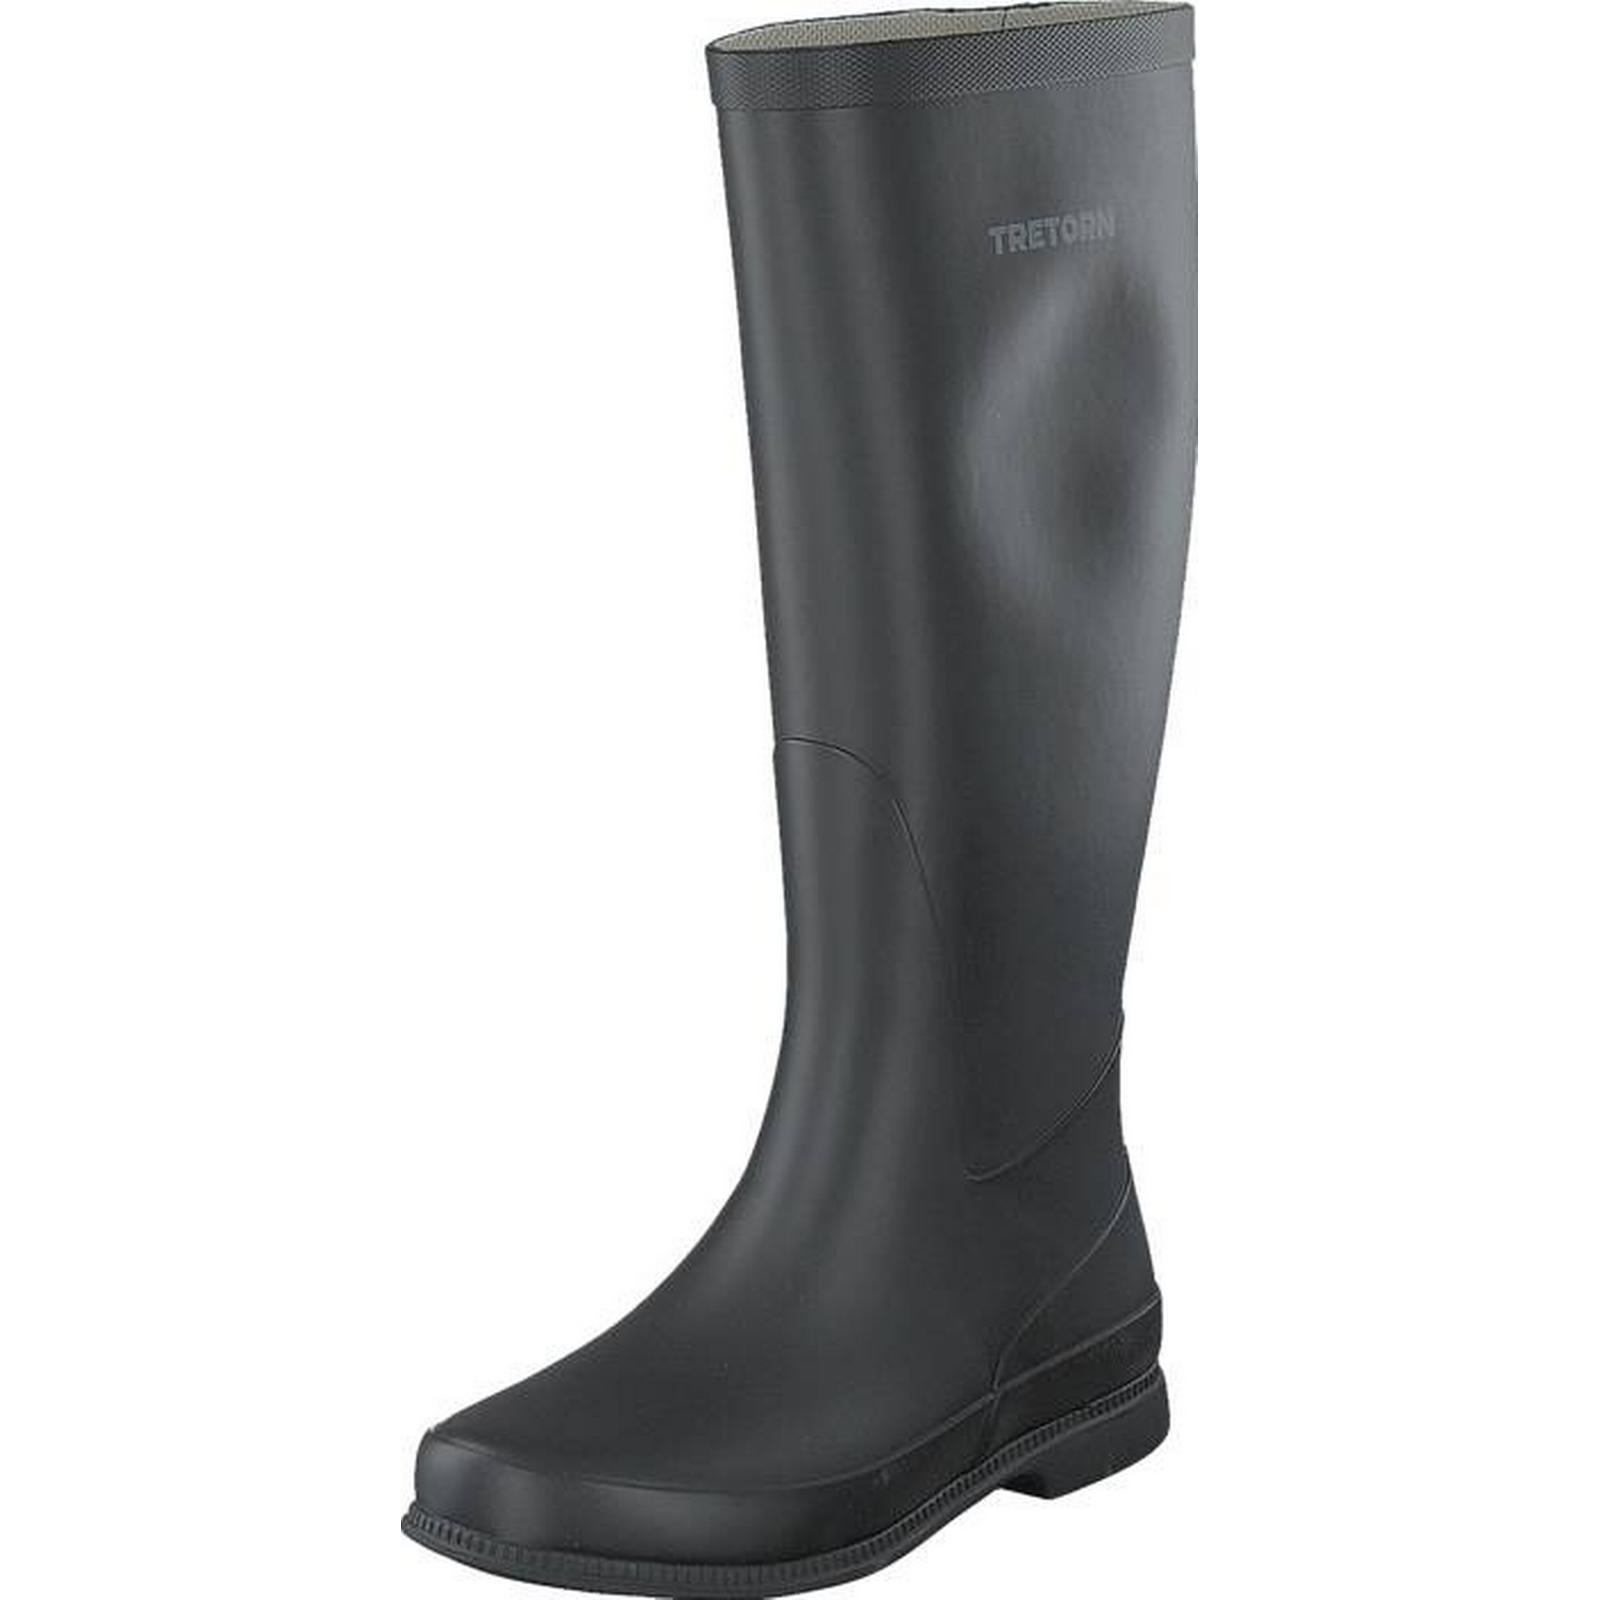 Tretorn Lisa Black, Shoes, High boots & Booties, Tall Wellies, Wellies, Tall Grey, Female, 39 47ef7d